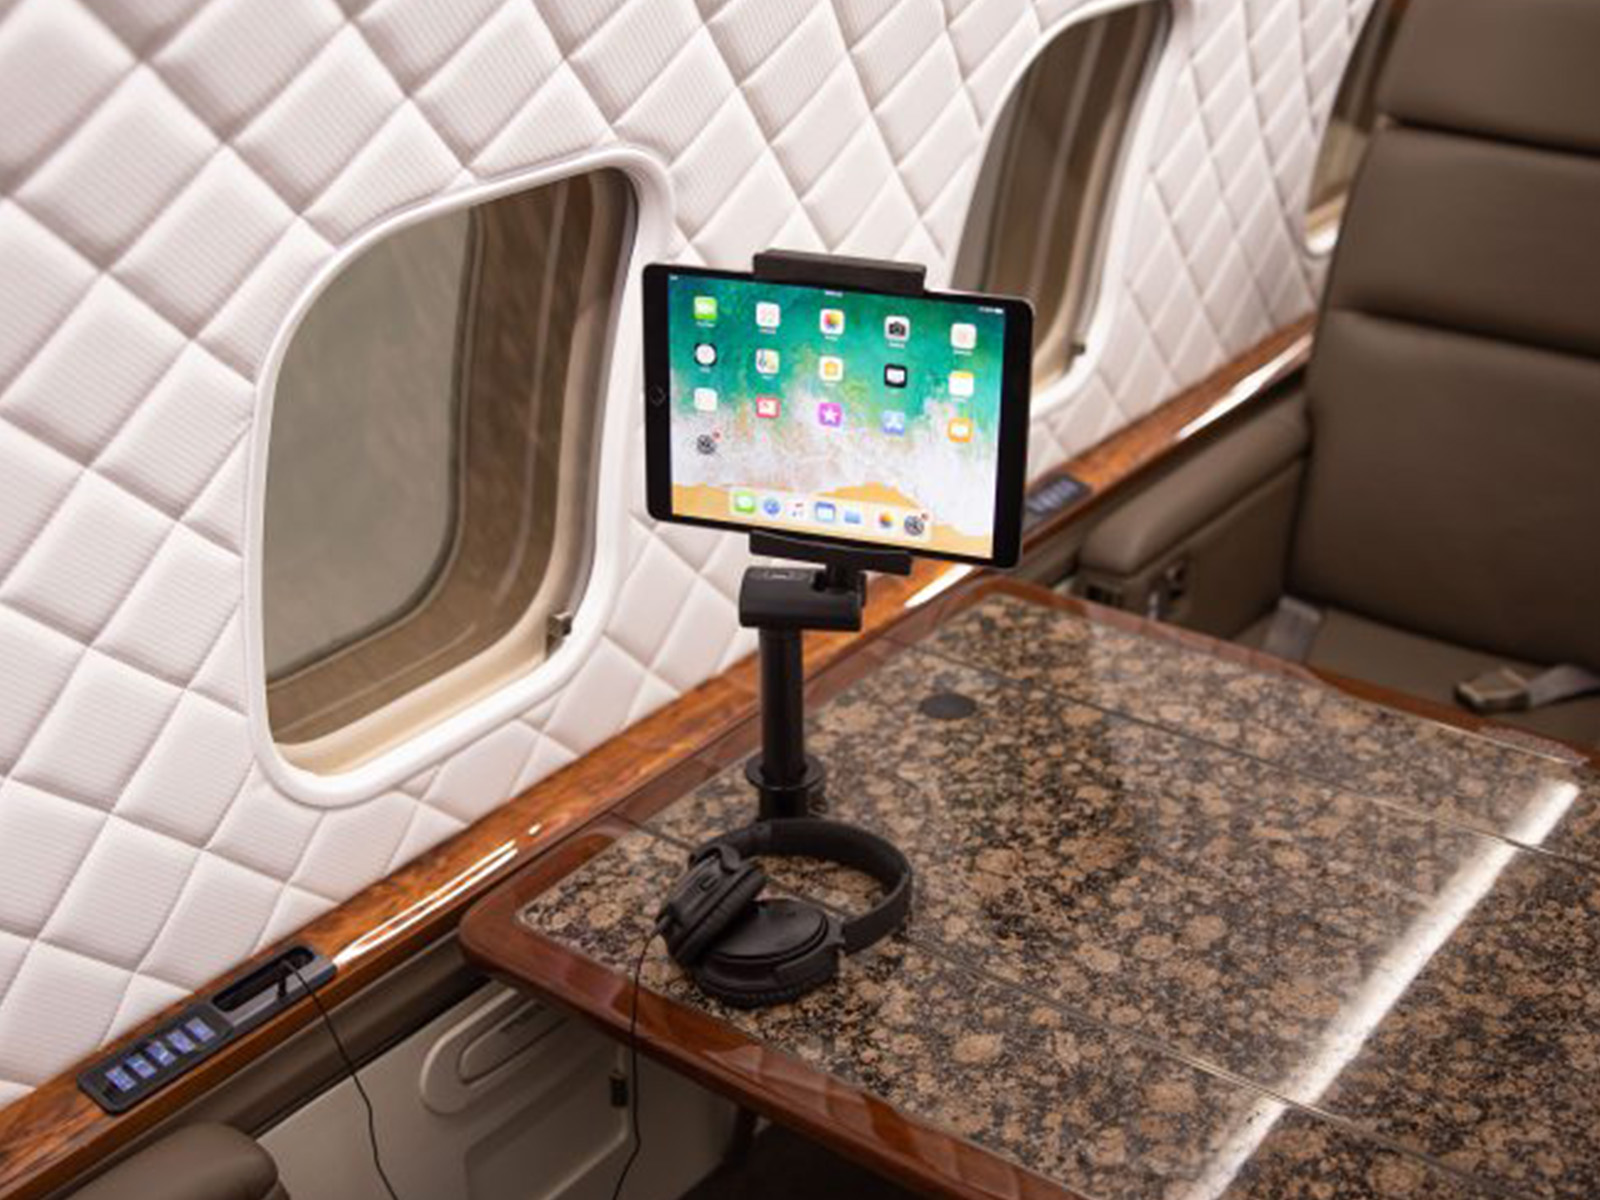 iPad resting in an ergonomic stand